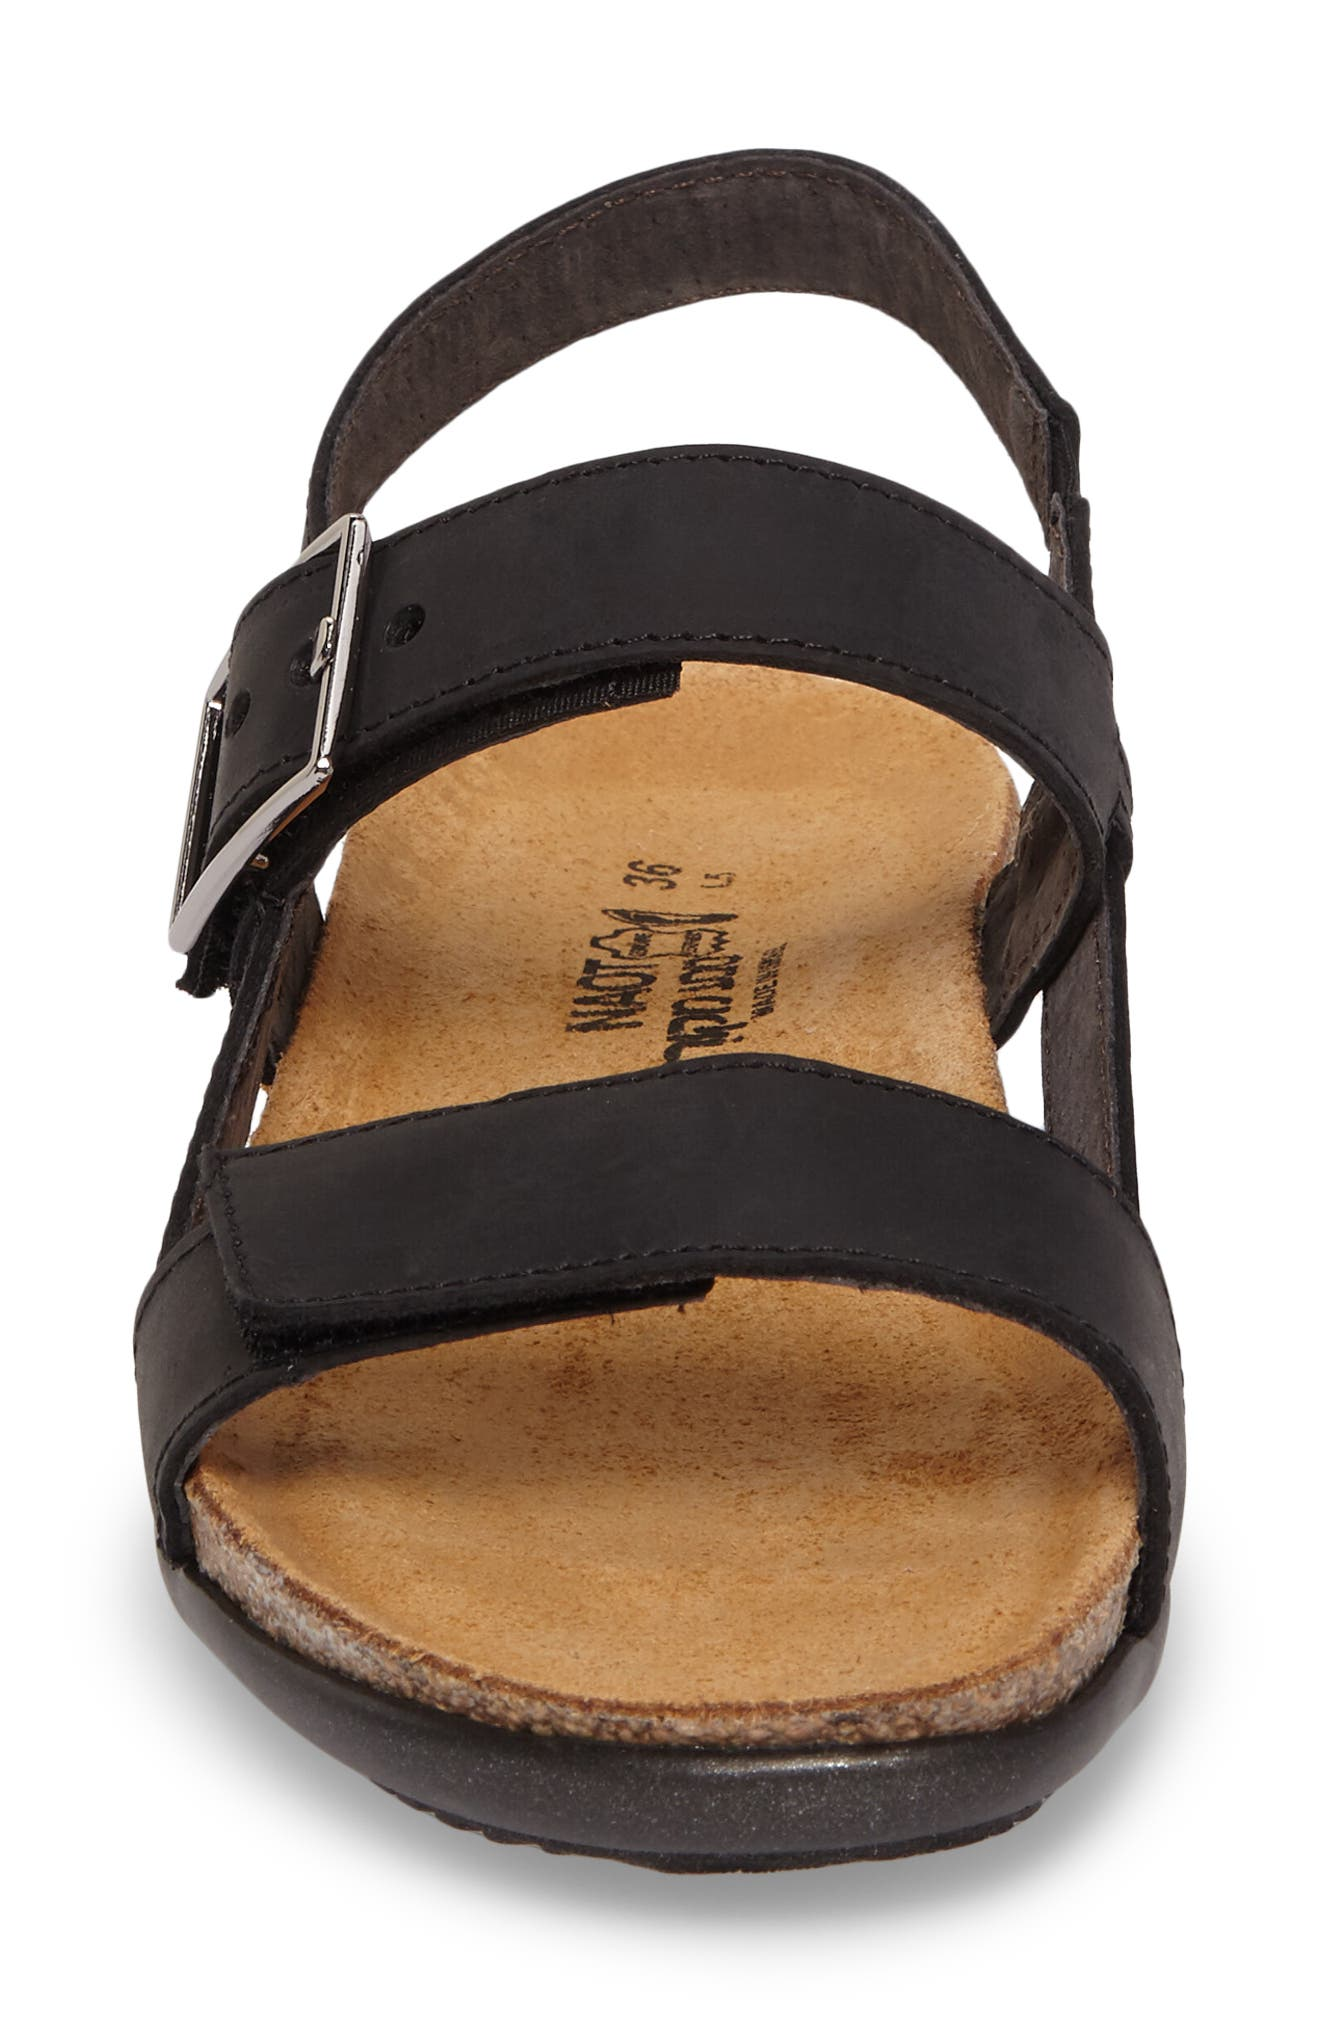 Norah Sandal,                             Alternate thumbnail 4, color,                             Oily Coal Nubuck